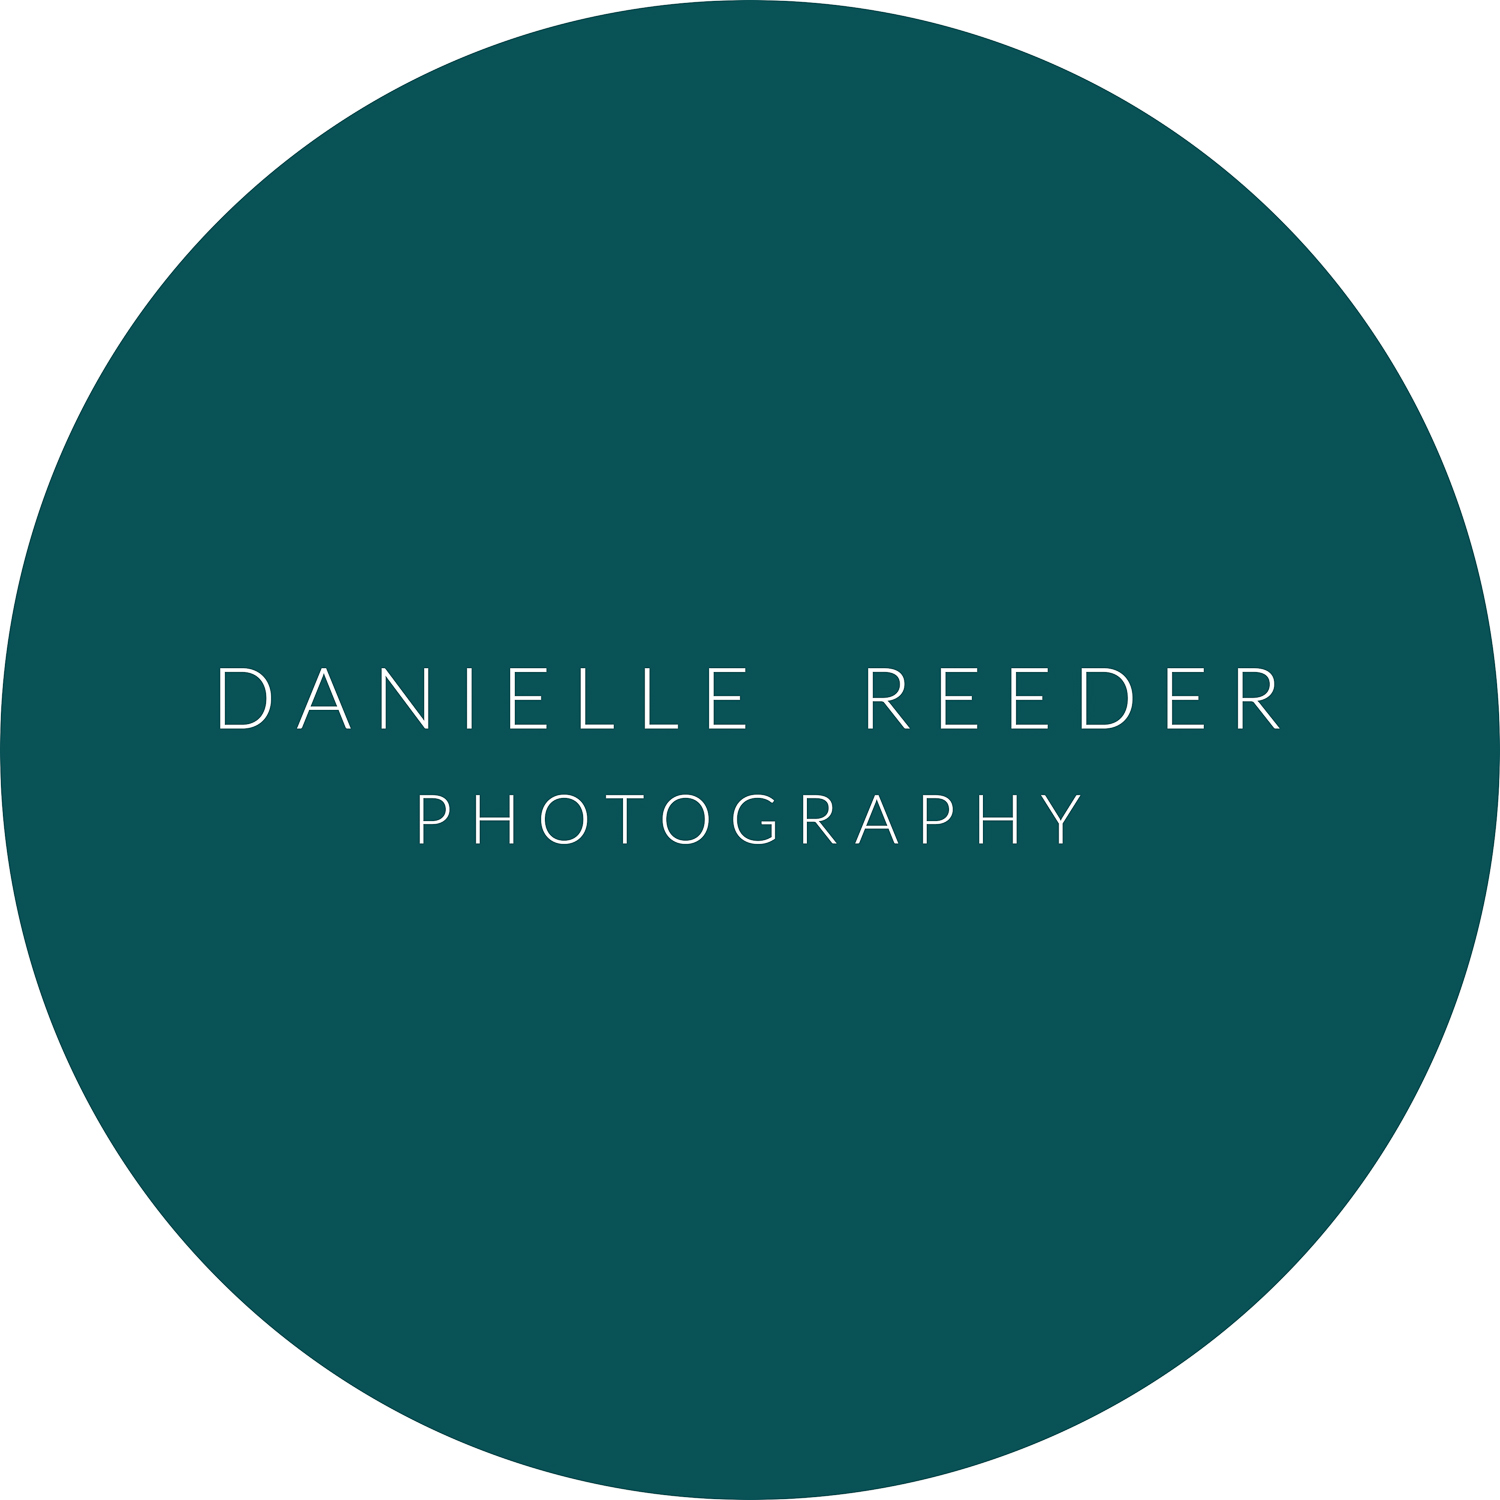 Danielle Reeder Photography